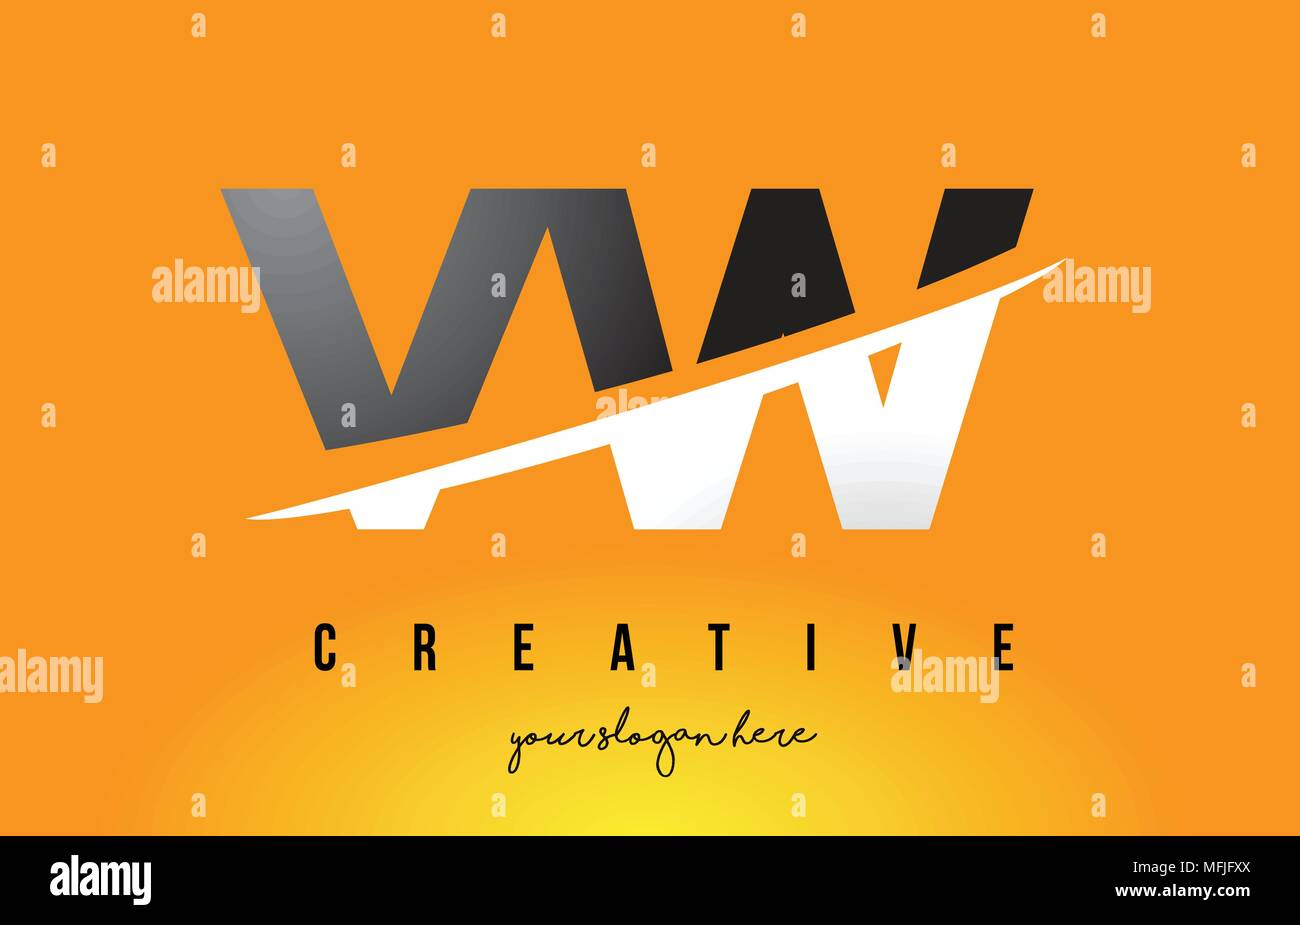 VW V W Letter Modern Logo Design with Swoosh Cutting the Middle Letters and Yellow Background. - Stock Vector